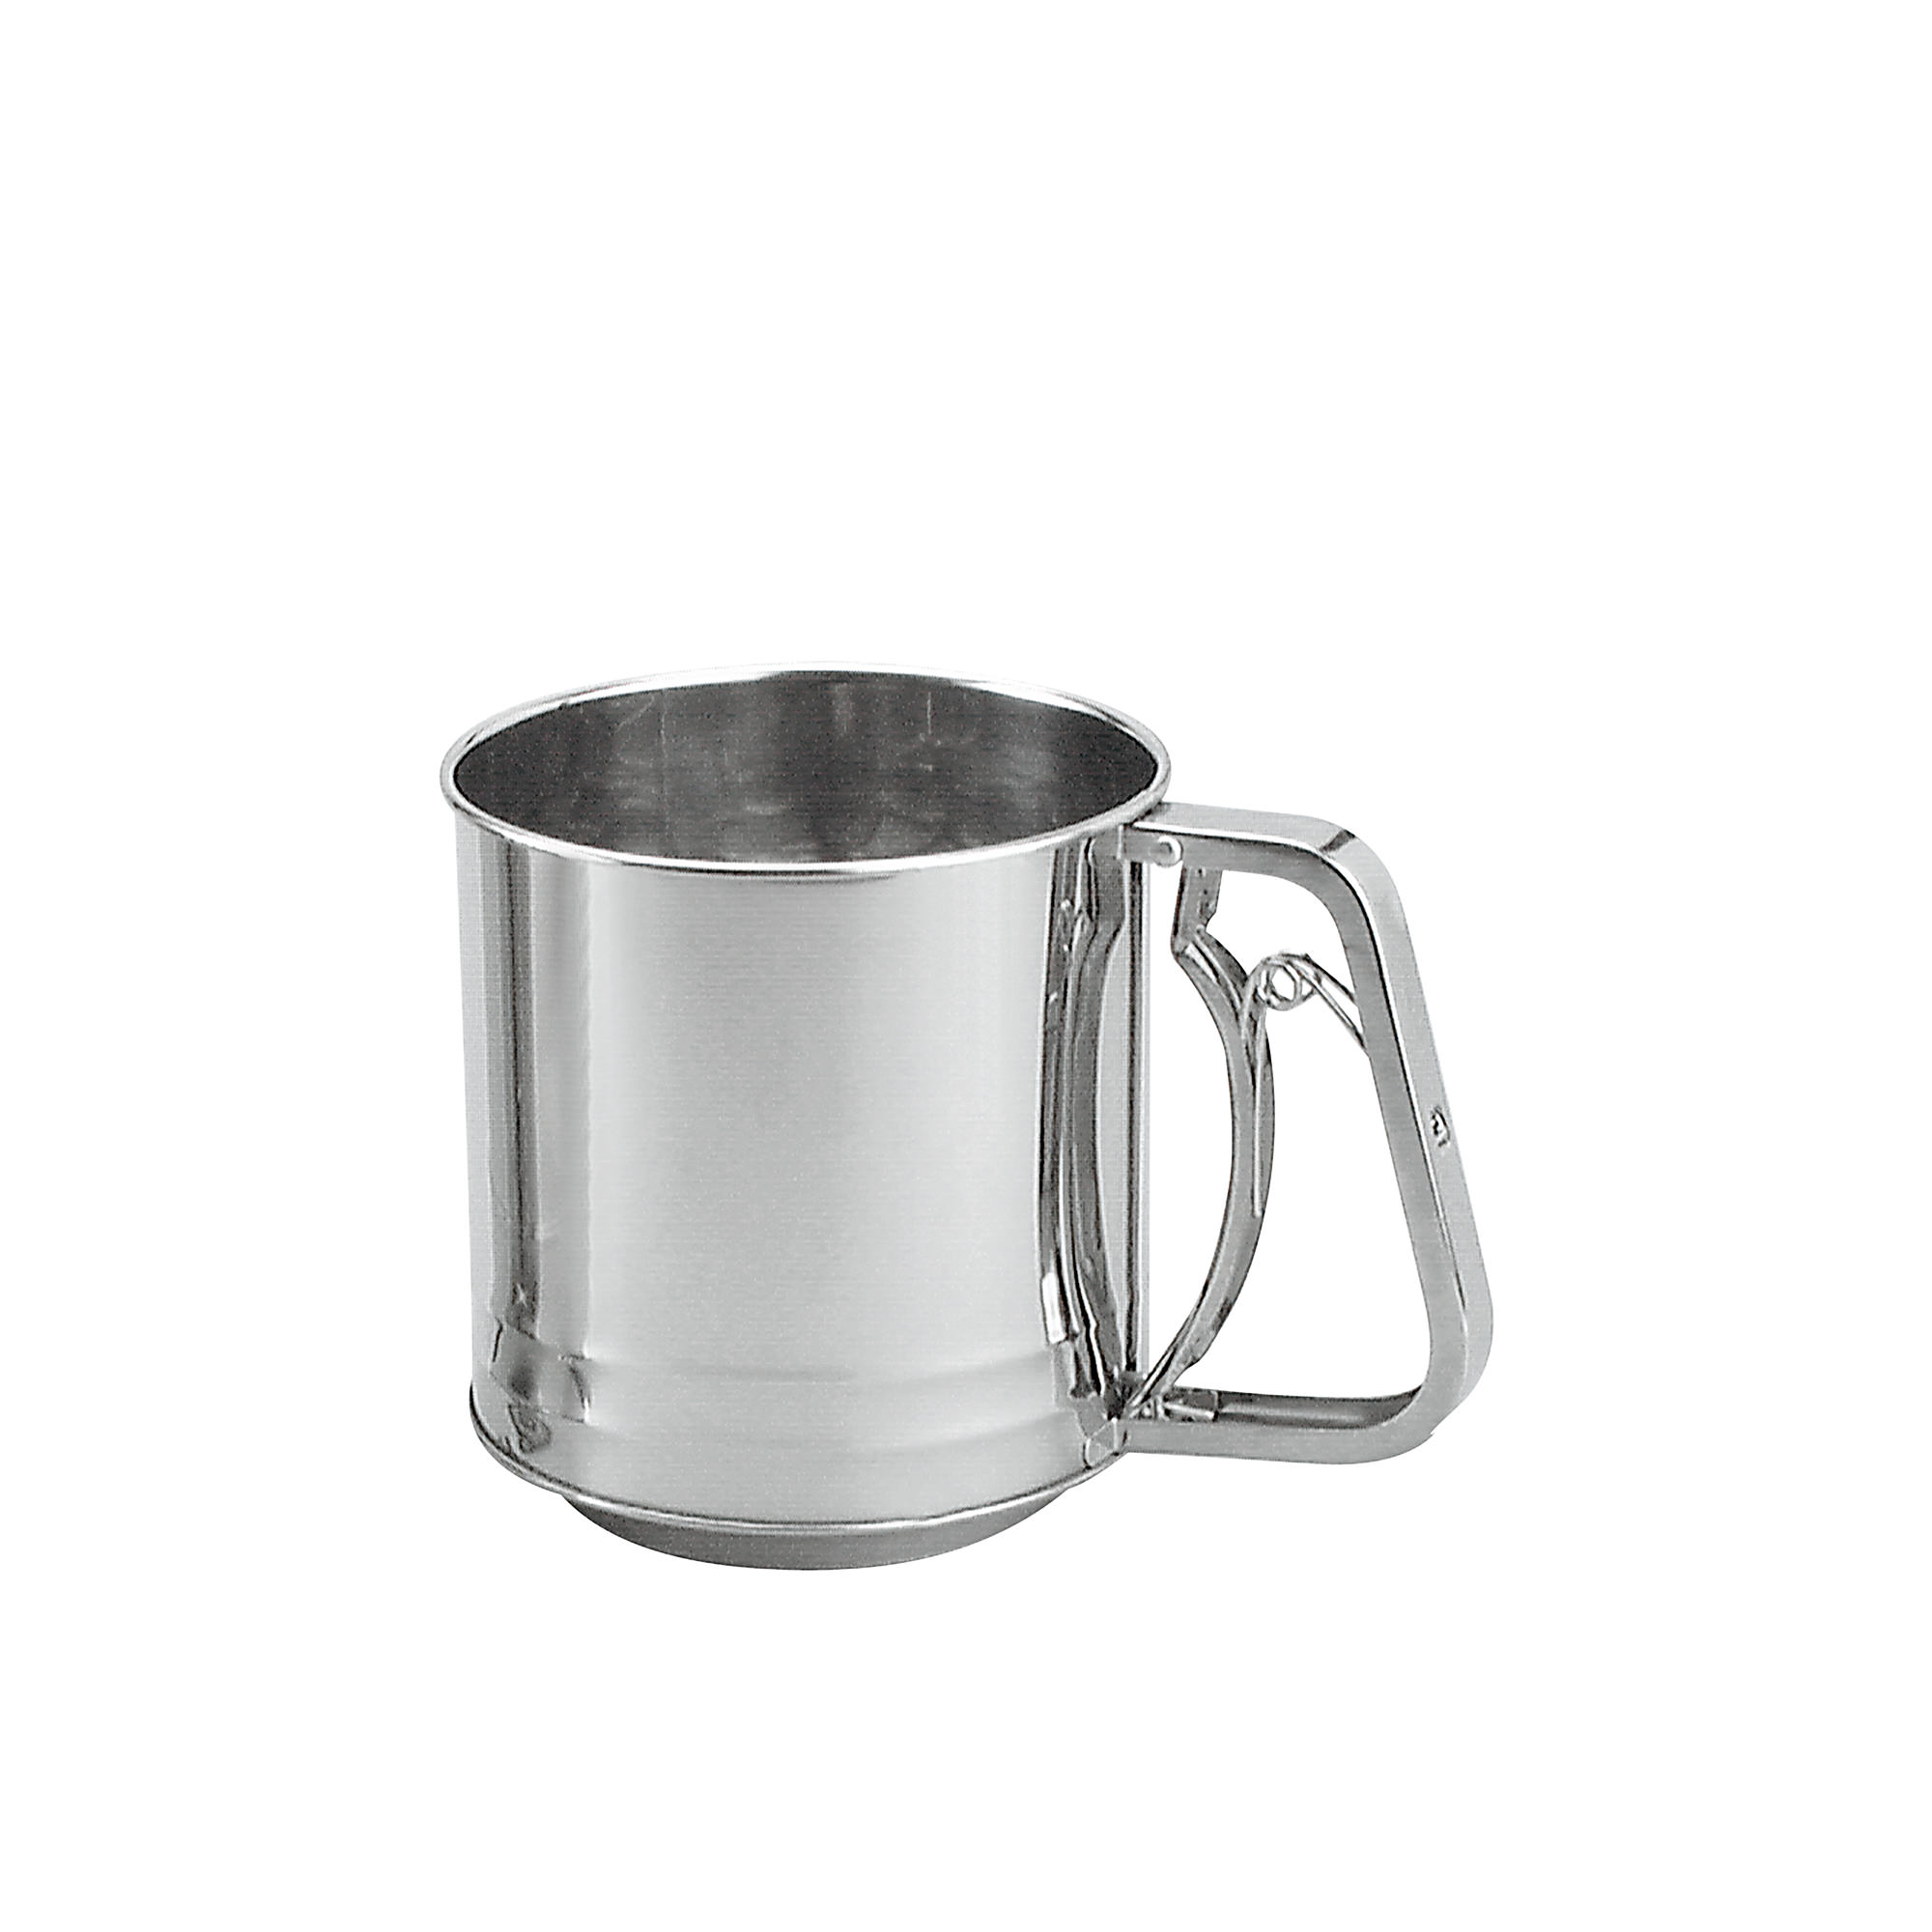 Chef Inox Stainless Steel Squeeze handle Flour Sifter 3 Cup